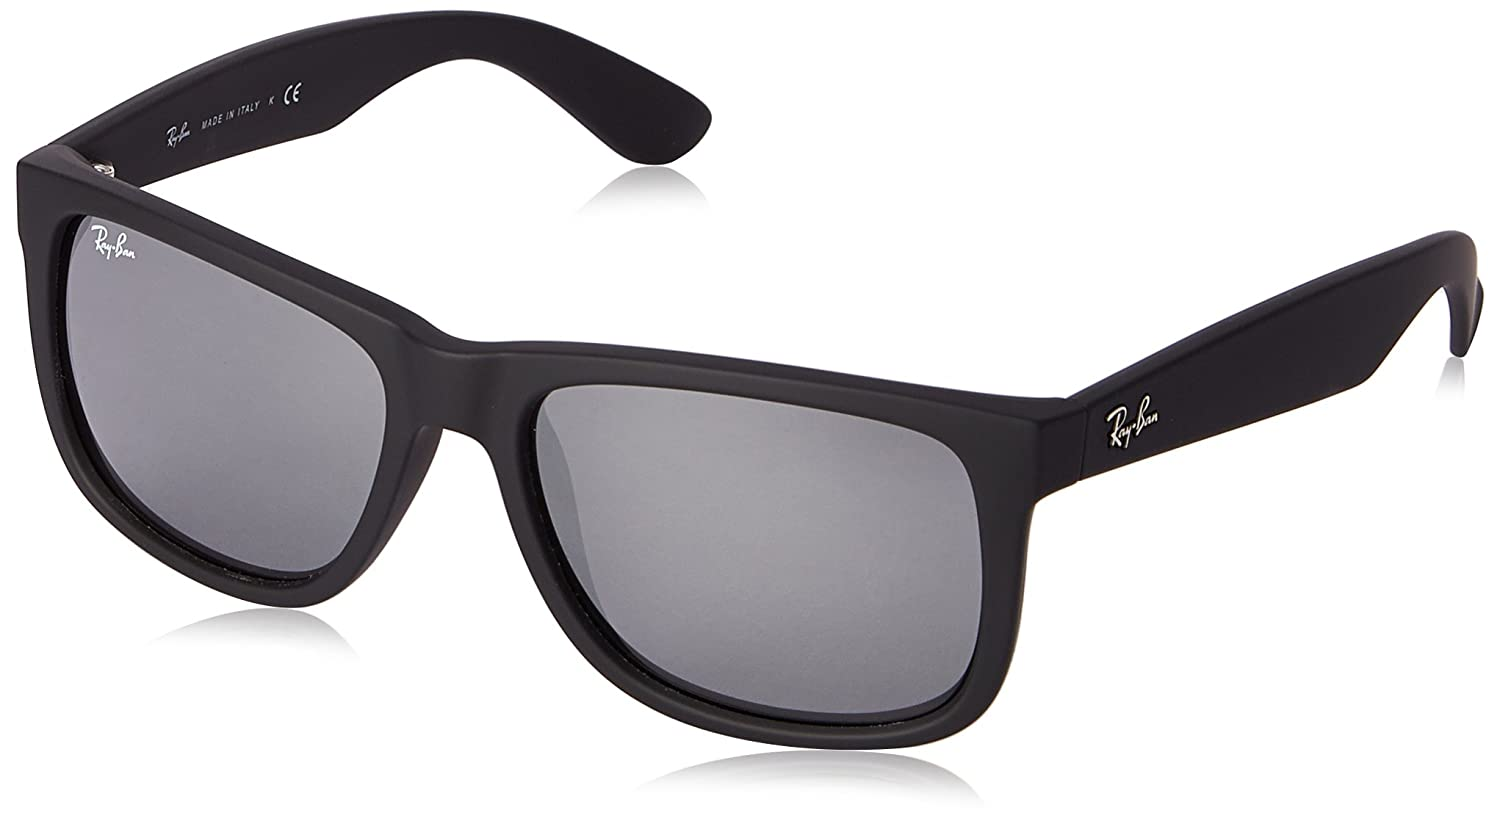 0e396db015d Amazon.com  Ray-Ban Justin Colour Mix RB4165 622 6G Sunglasses Rubber Black  Frame  Grey Mirror Silver Lens 55mm  Ray-Ban  Clothing